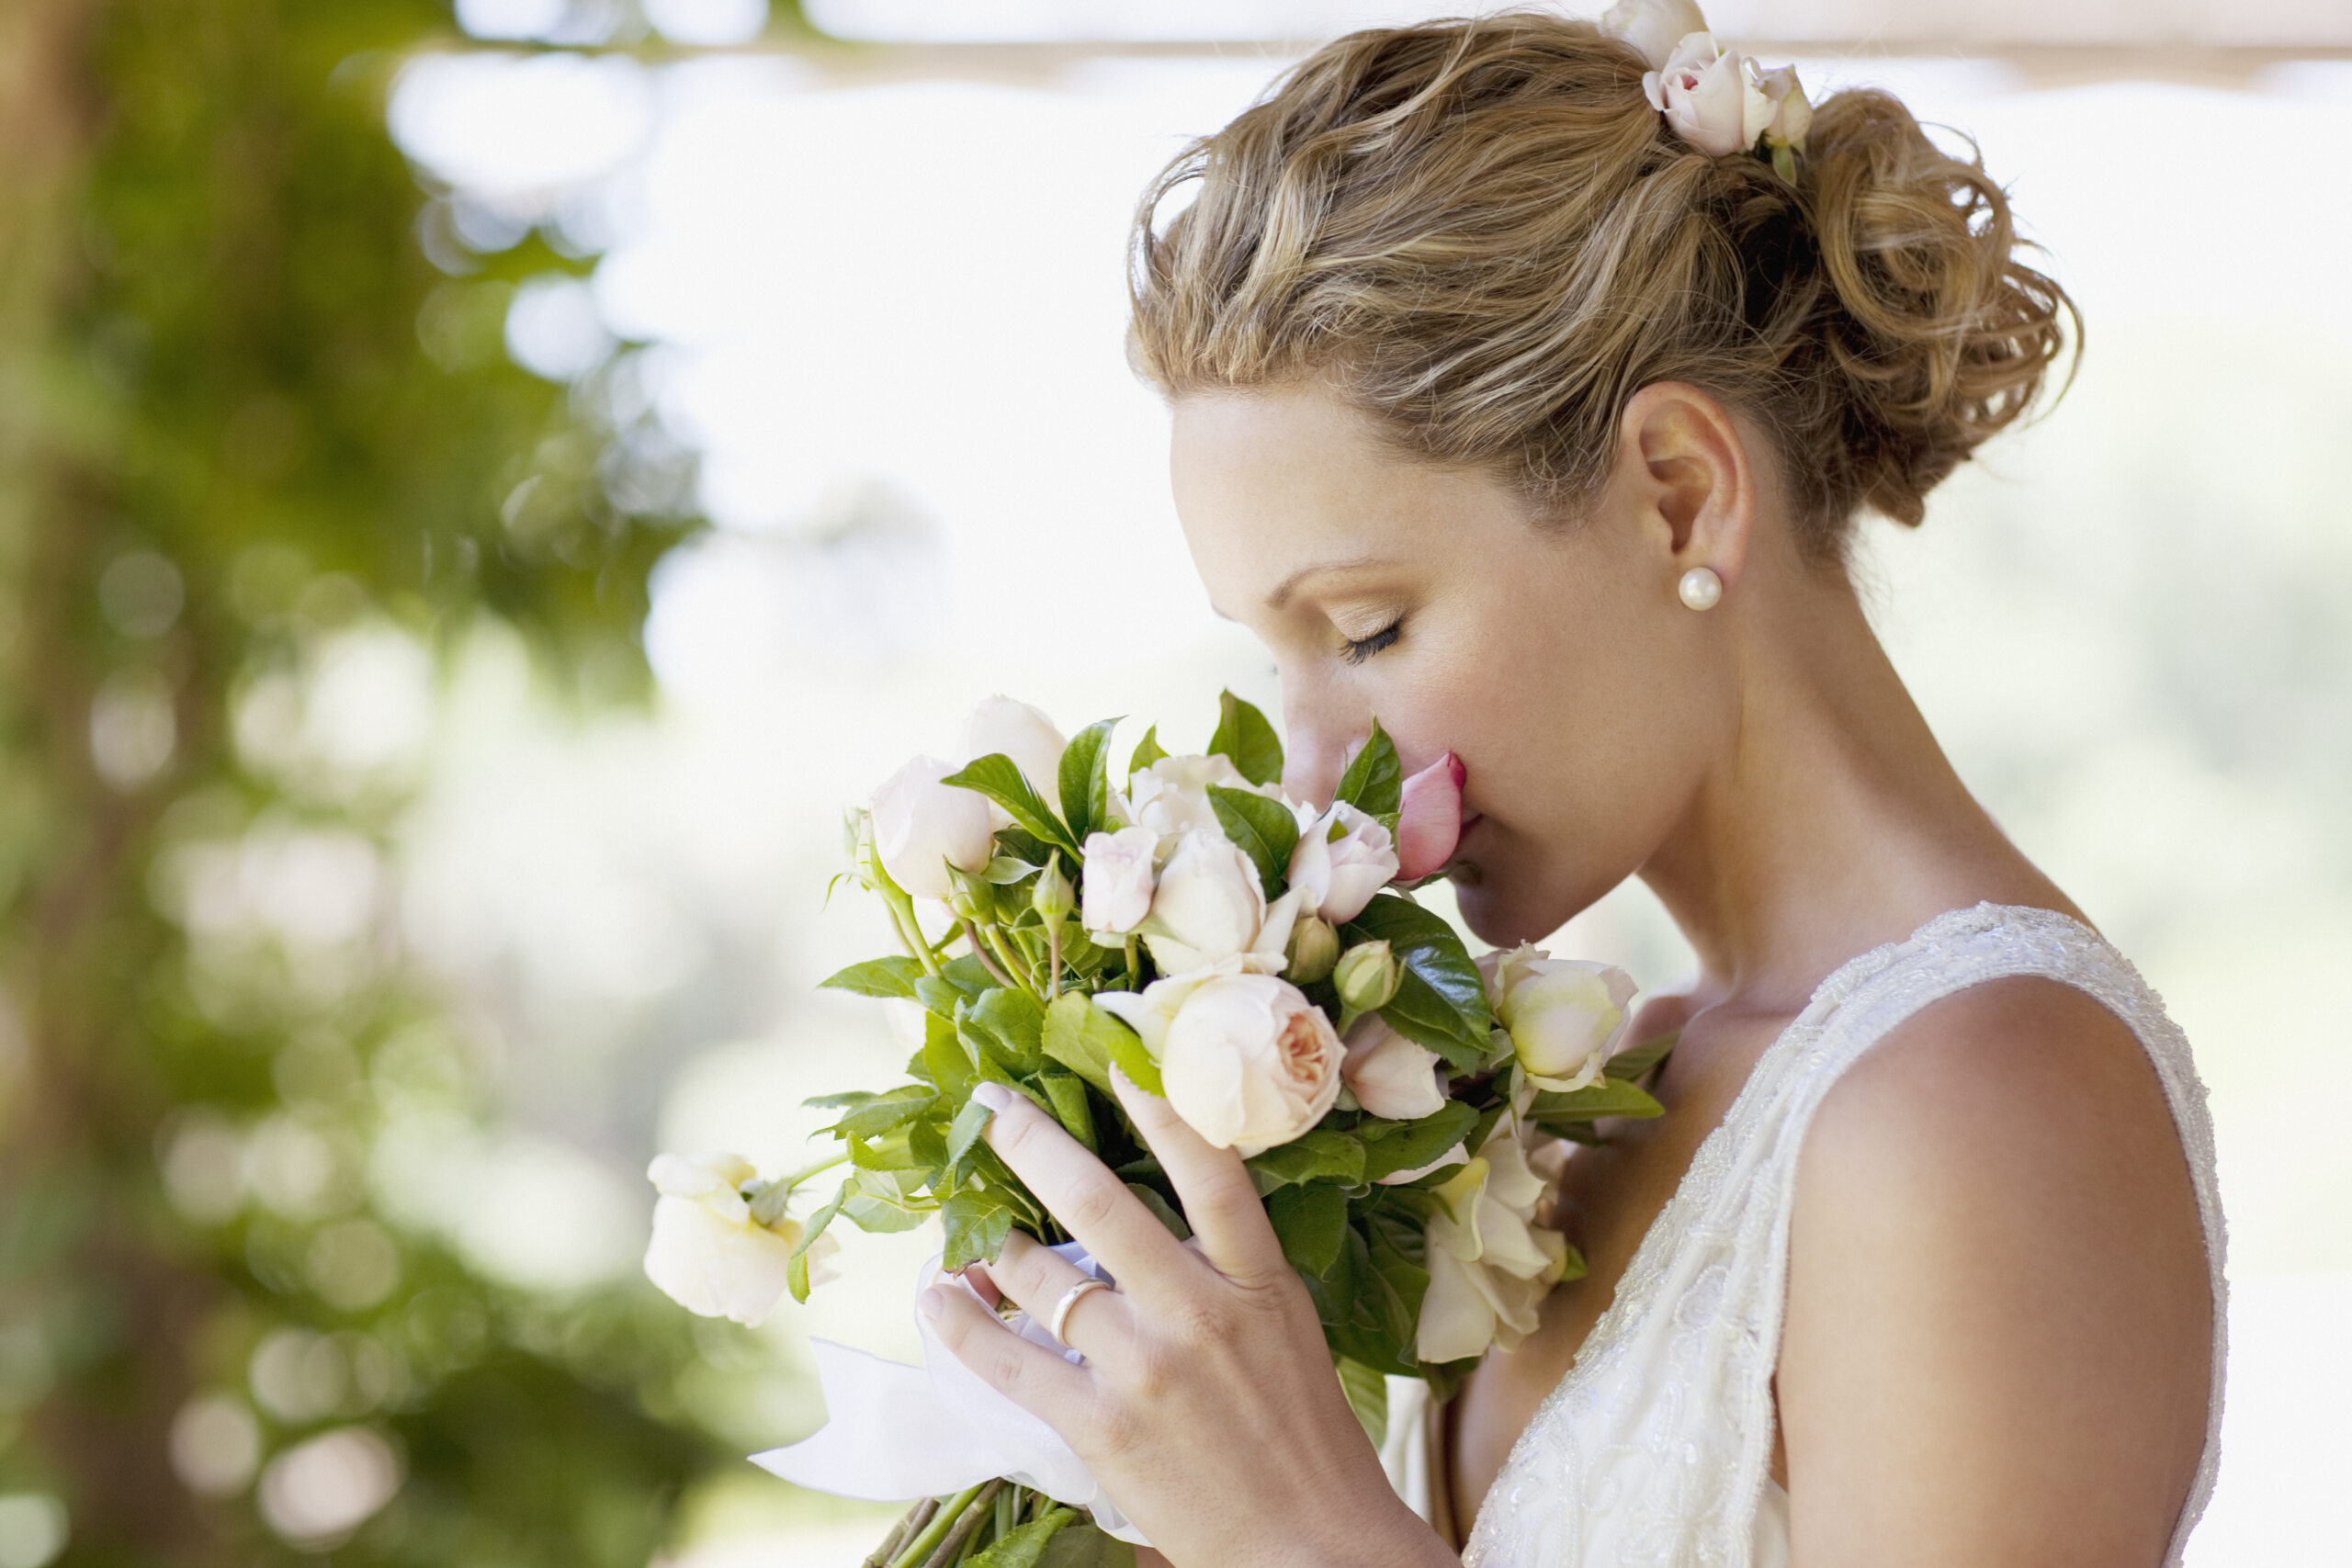 a bride holding wedding flowers